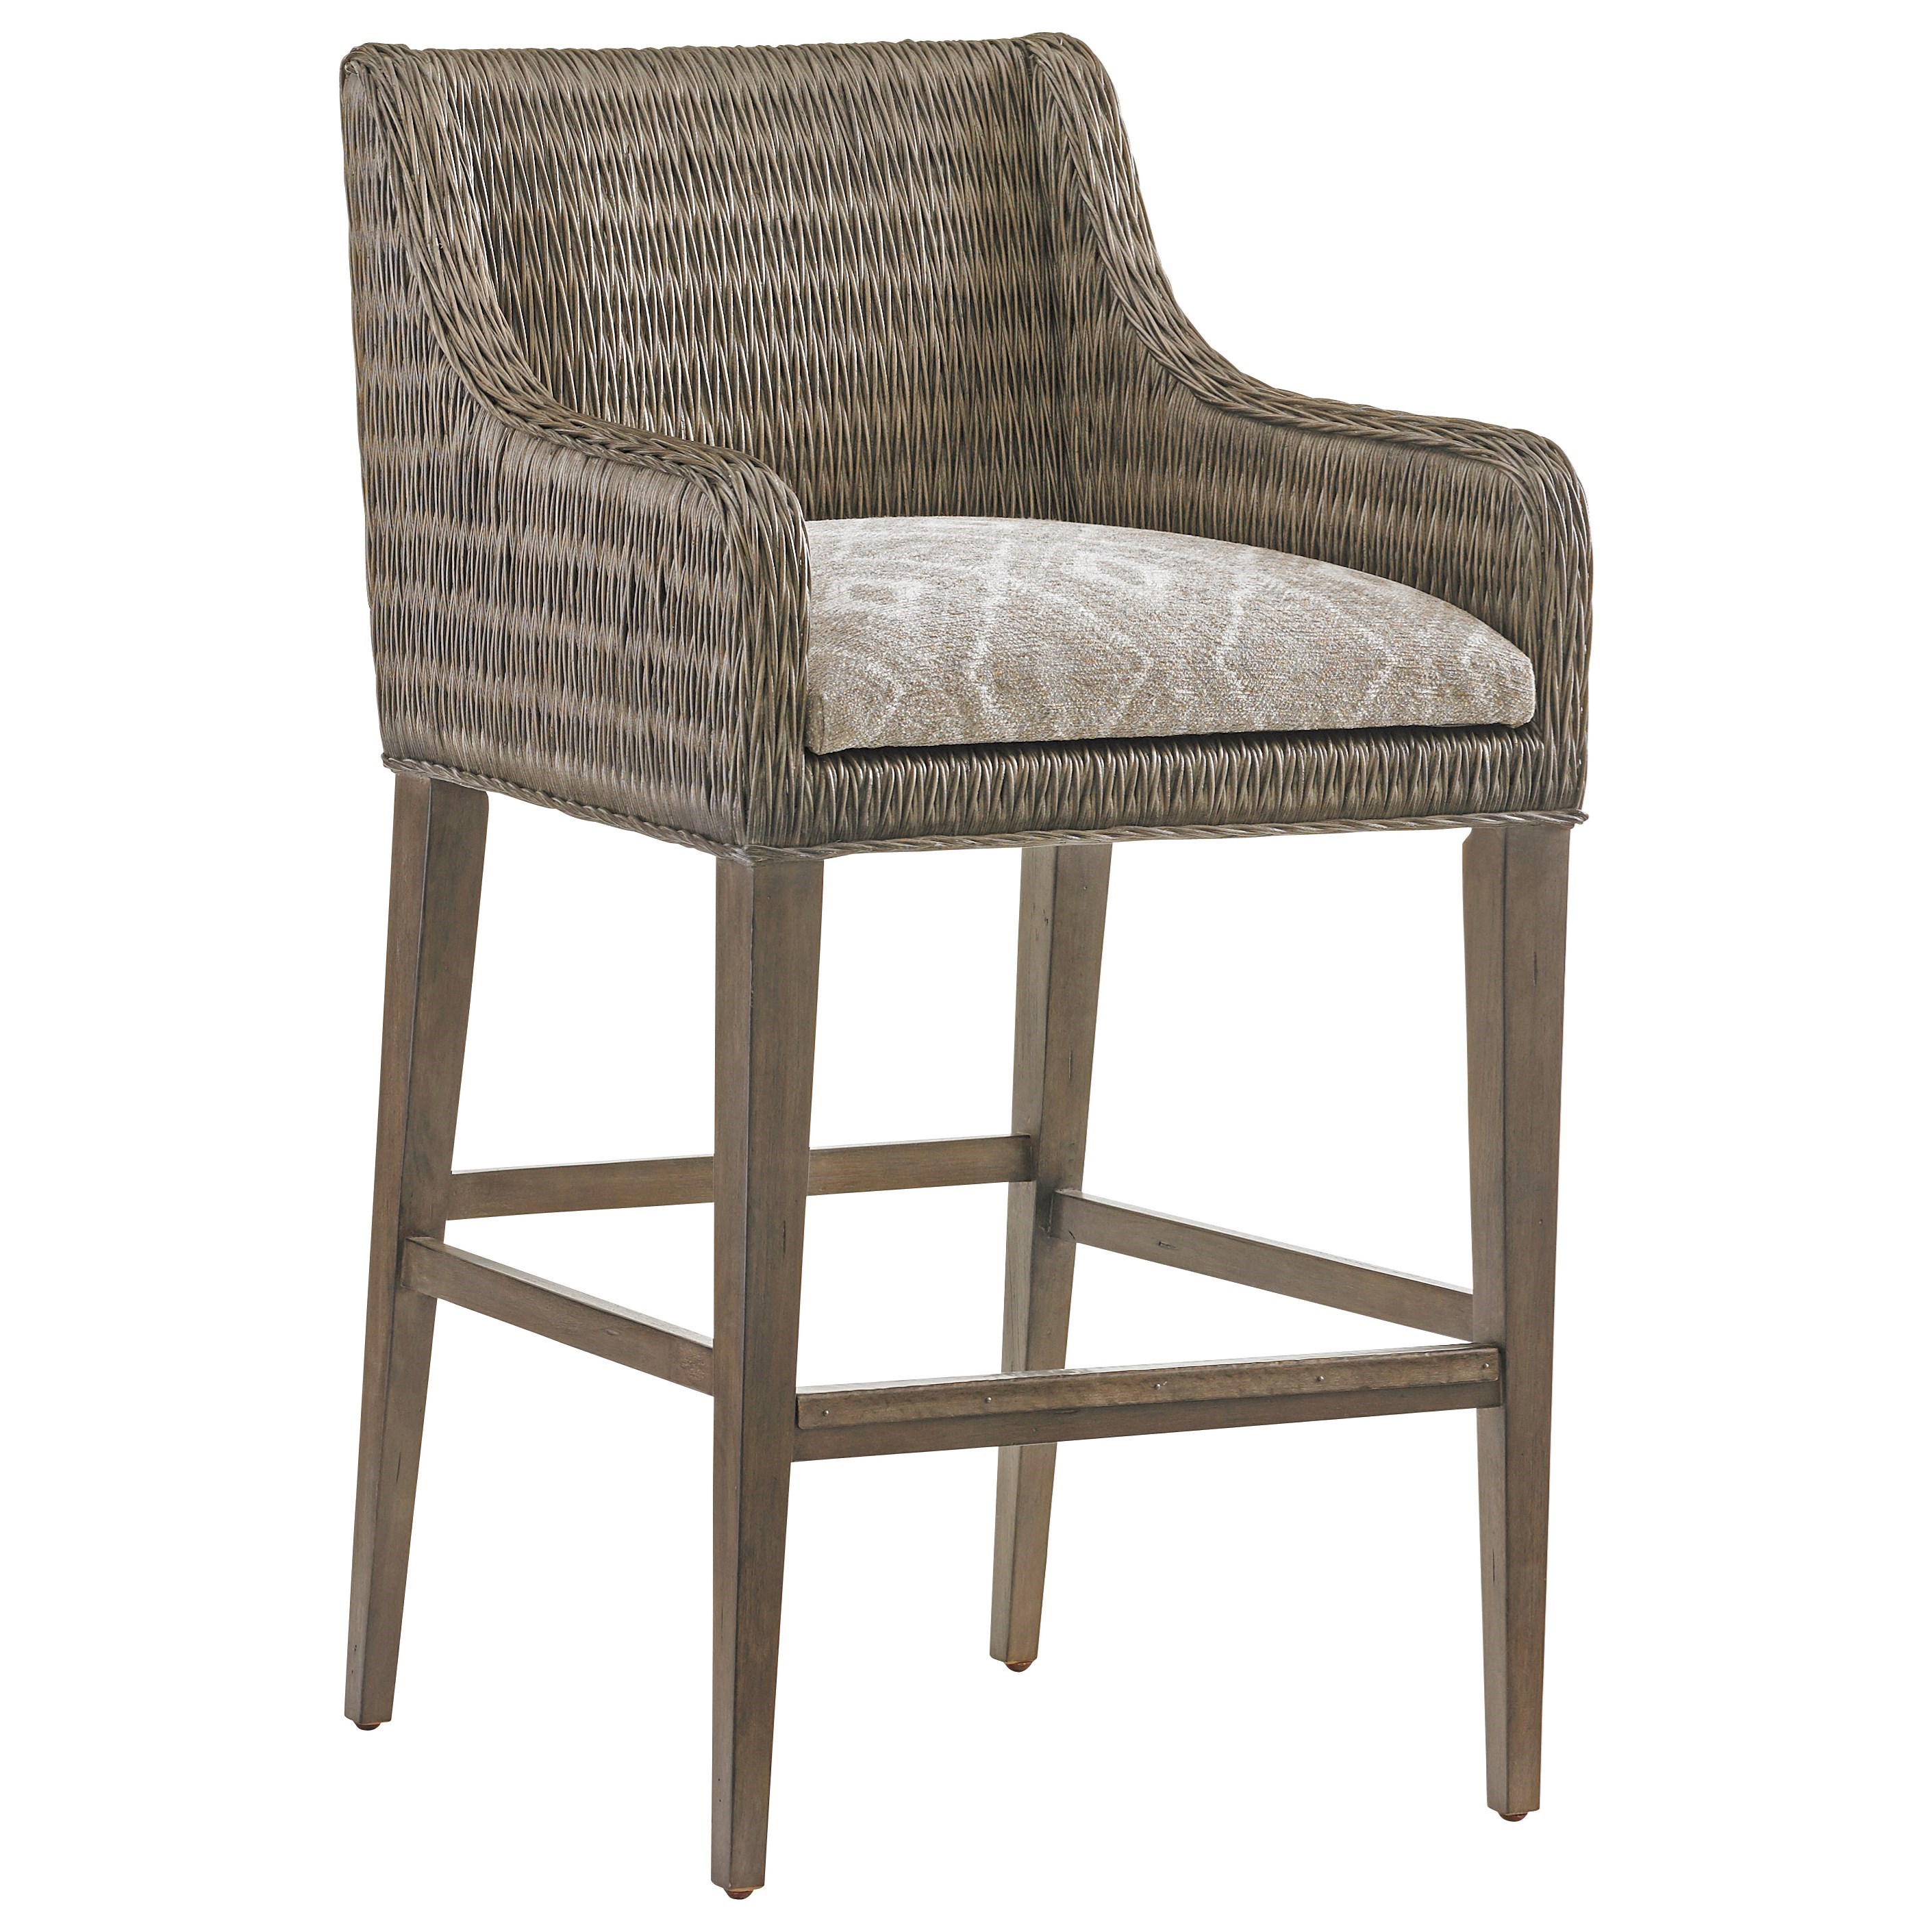 Cypress Point Turner Woven Bar Stool Custom by Tommy Bahama Home at Baer's Furniture